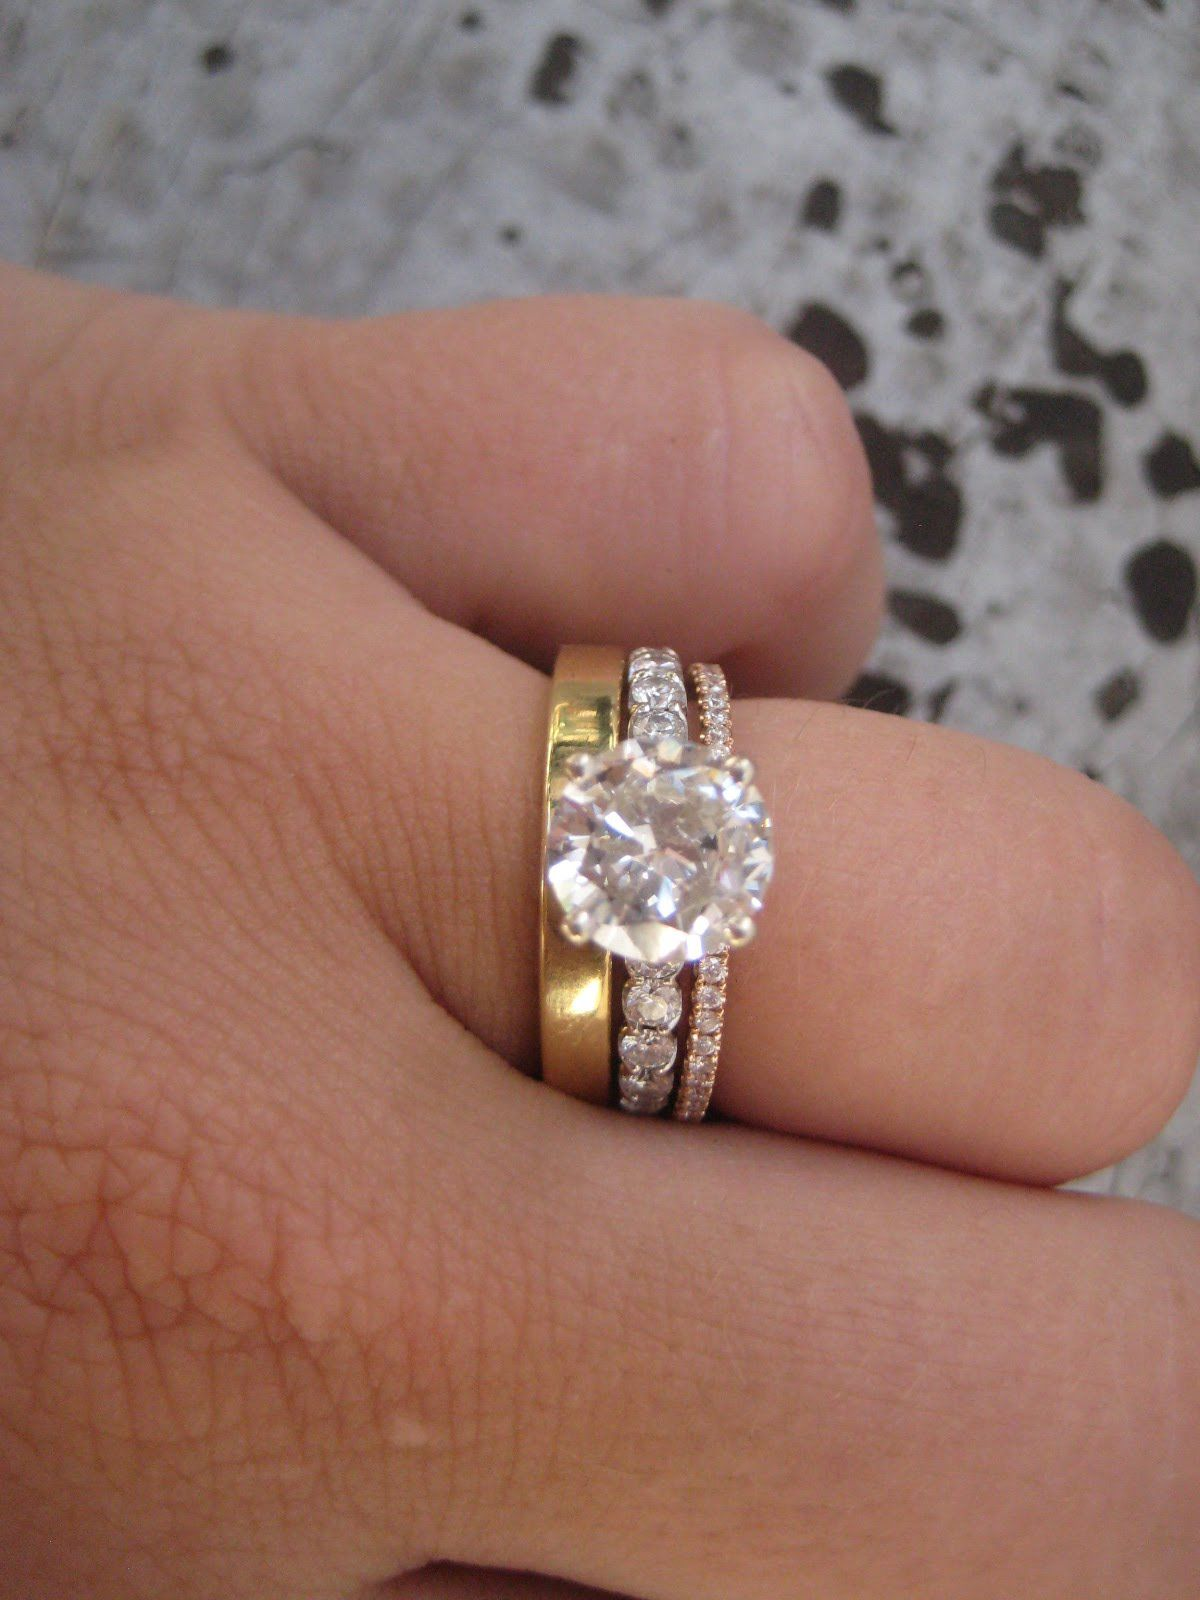 and pin go styles match with perfect platinum to my ring bands mix gold white yellow rose band engagement wedding